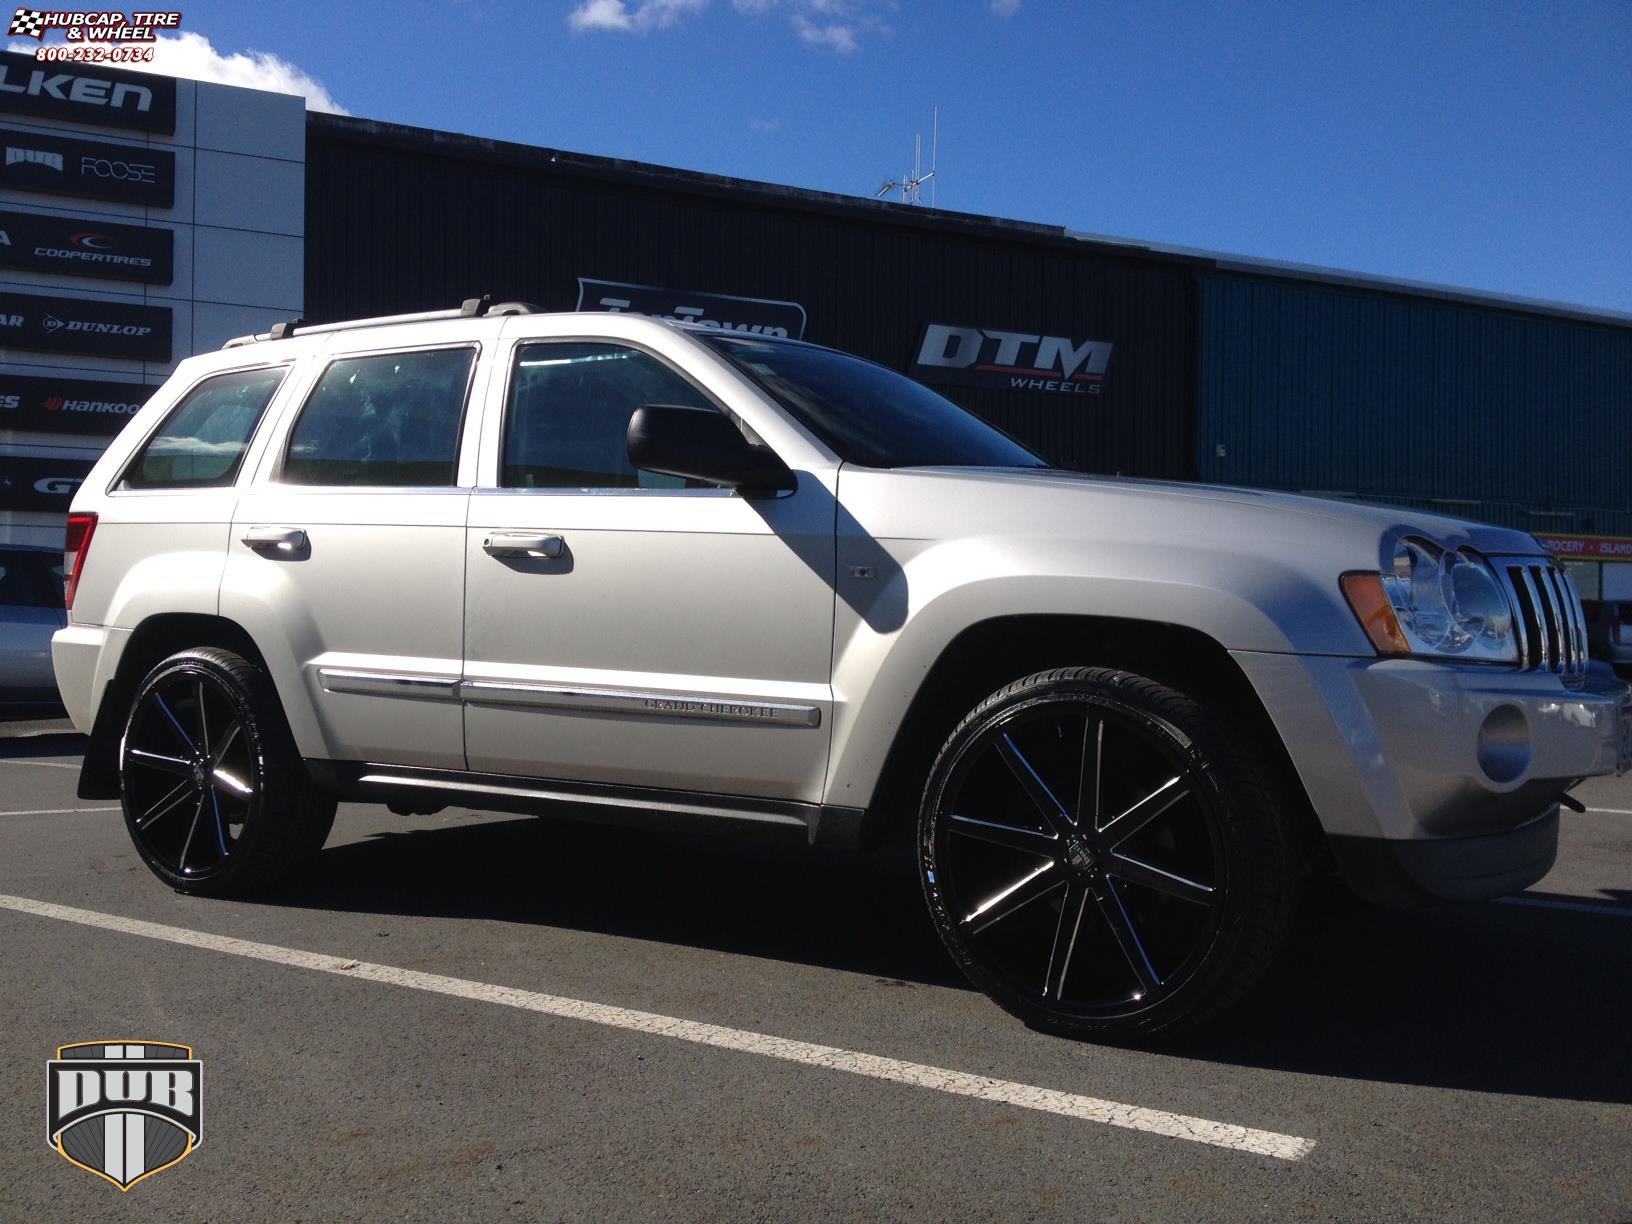 Jeep Grand Cherokee Dub Push S109 Wheels Gloss Black Milled 2005 Trailer Hitch 22x95 And Rims